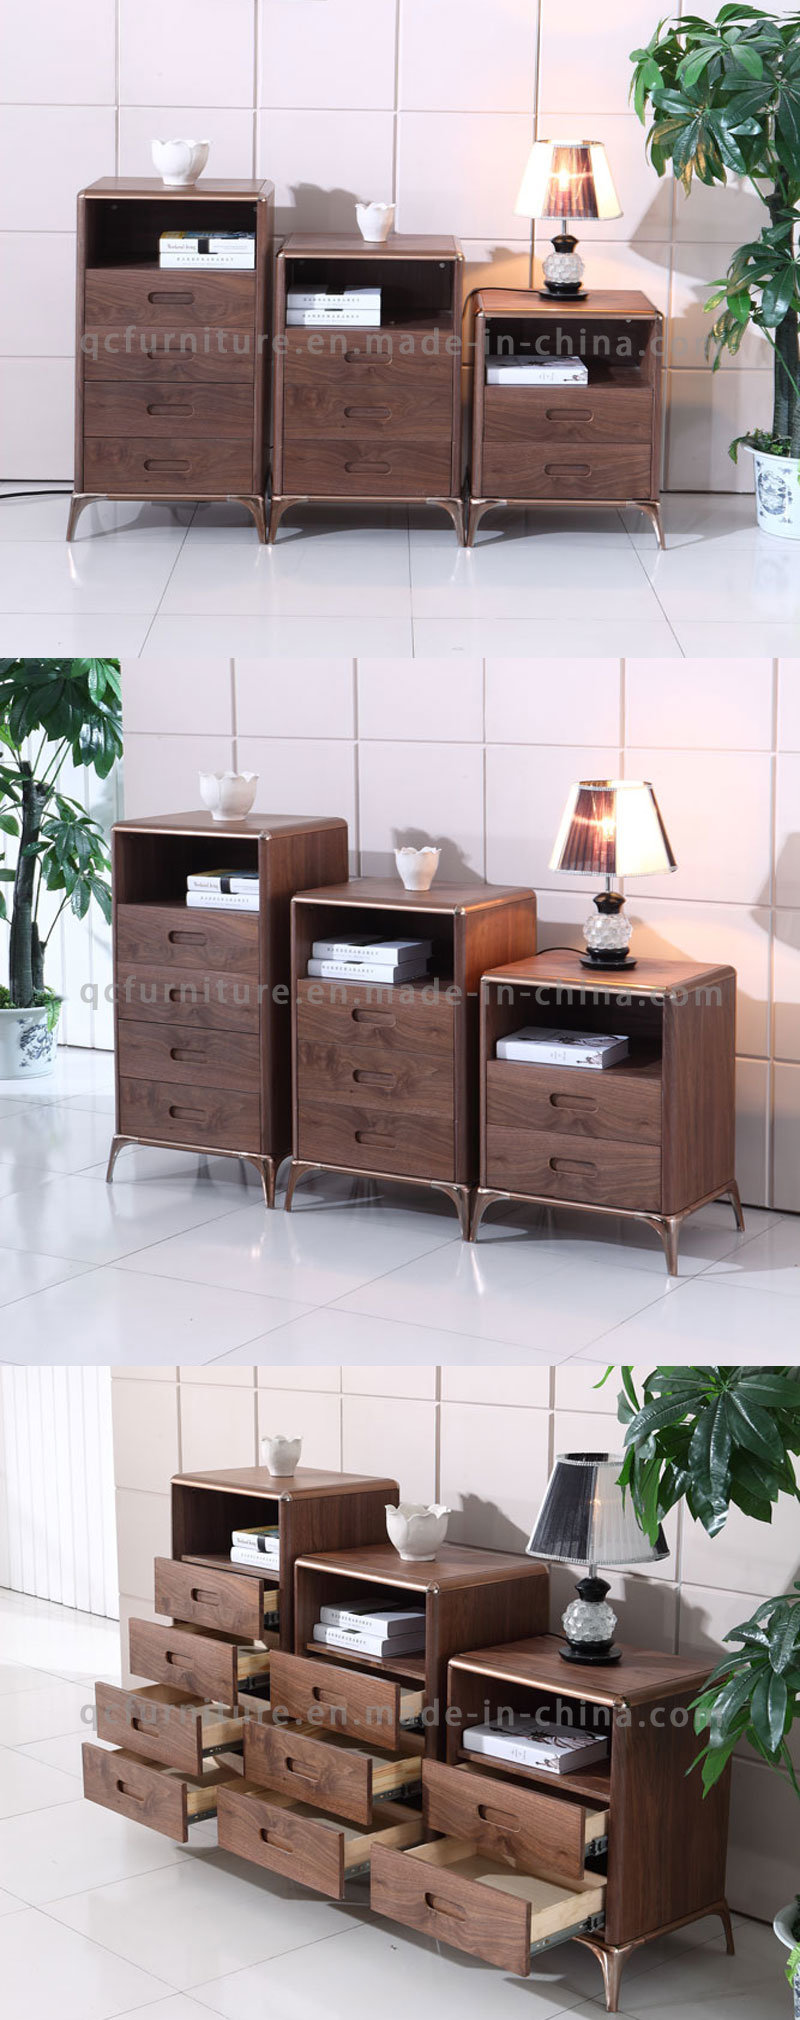 China Living Room Furniure Mini Solid Wood Shallow Chest of ...